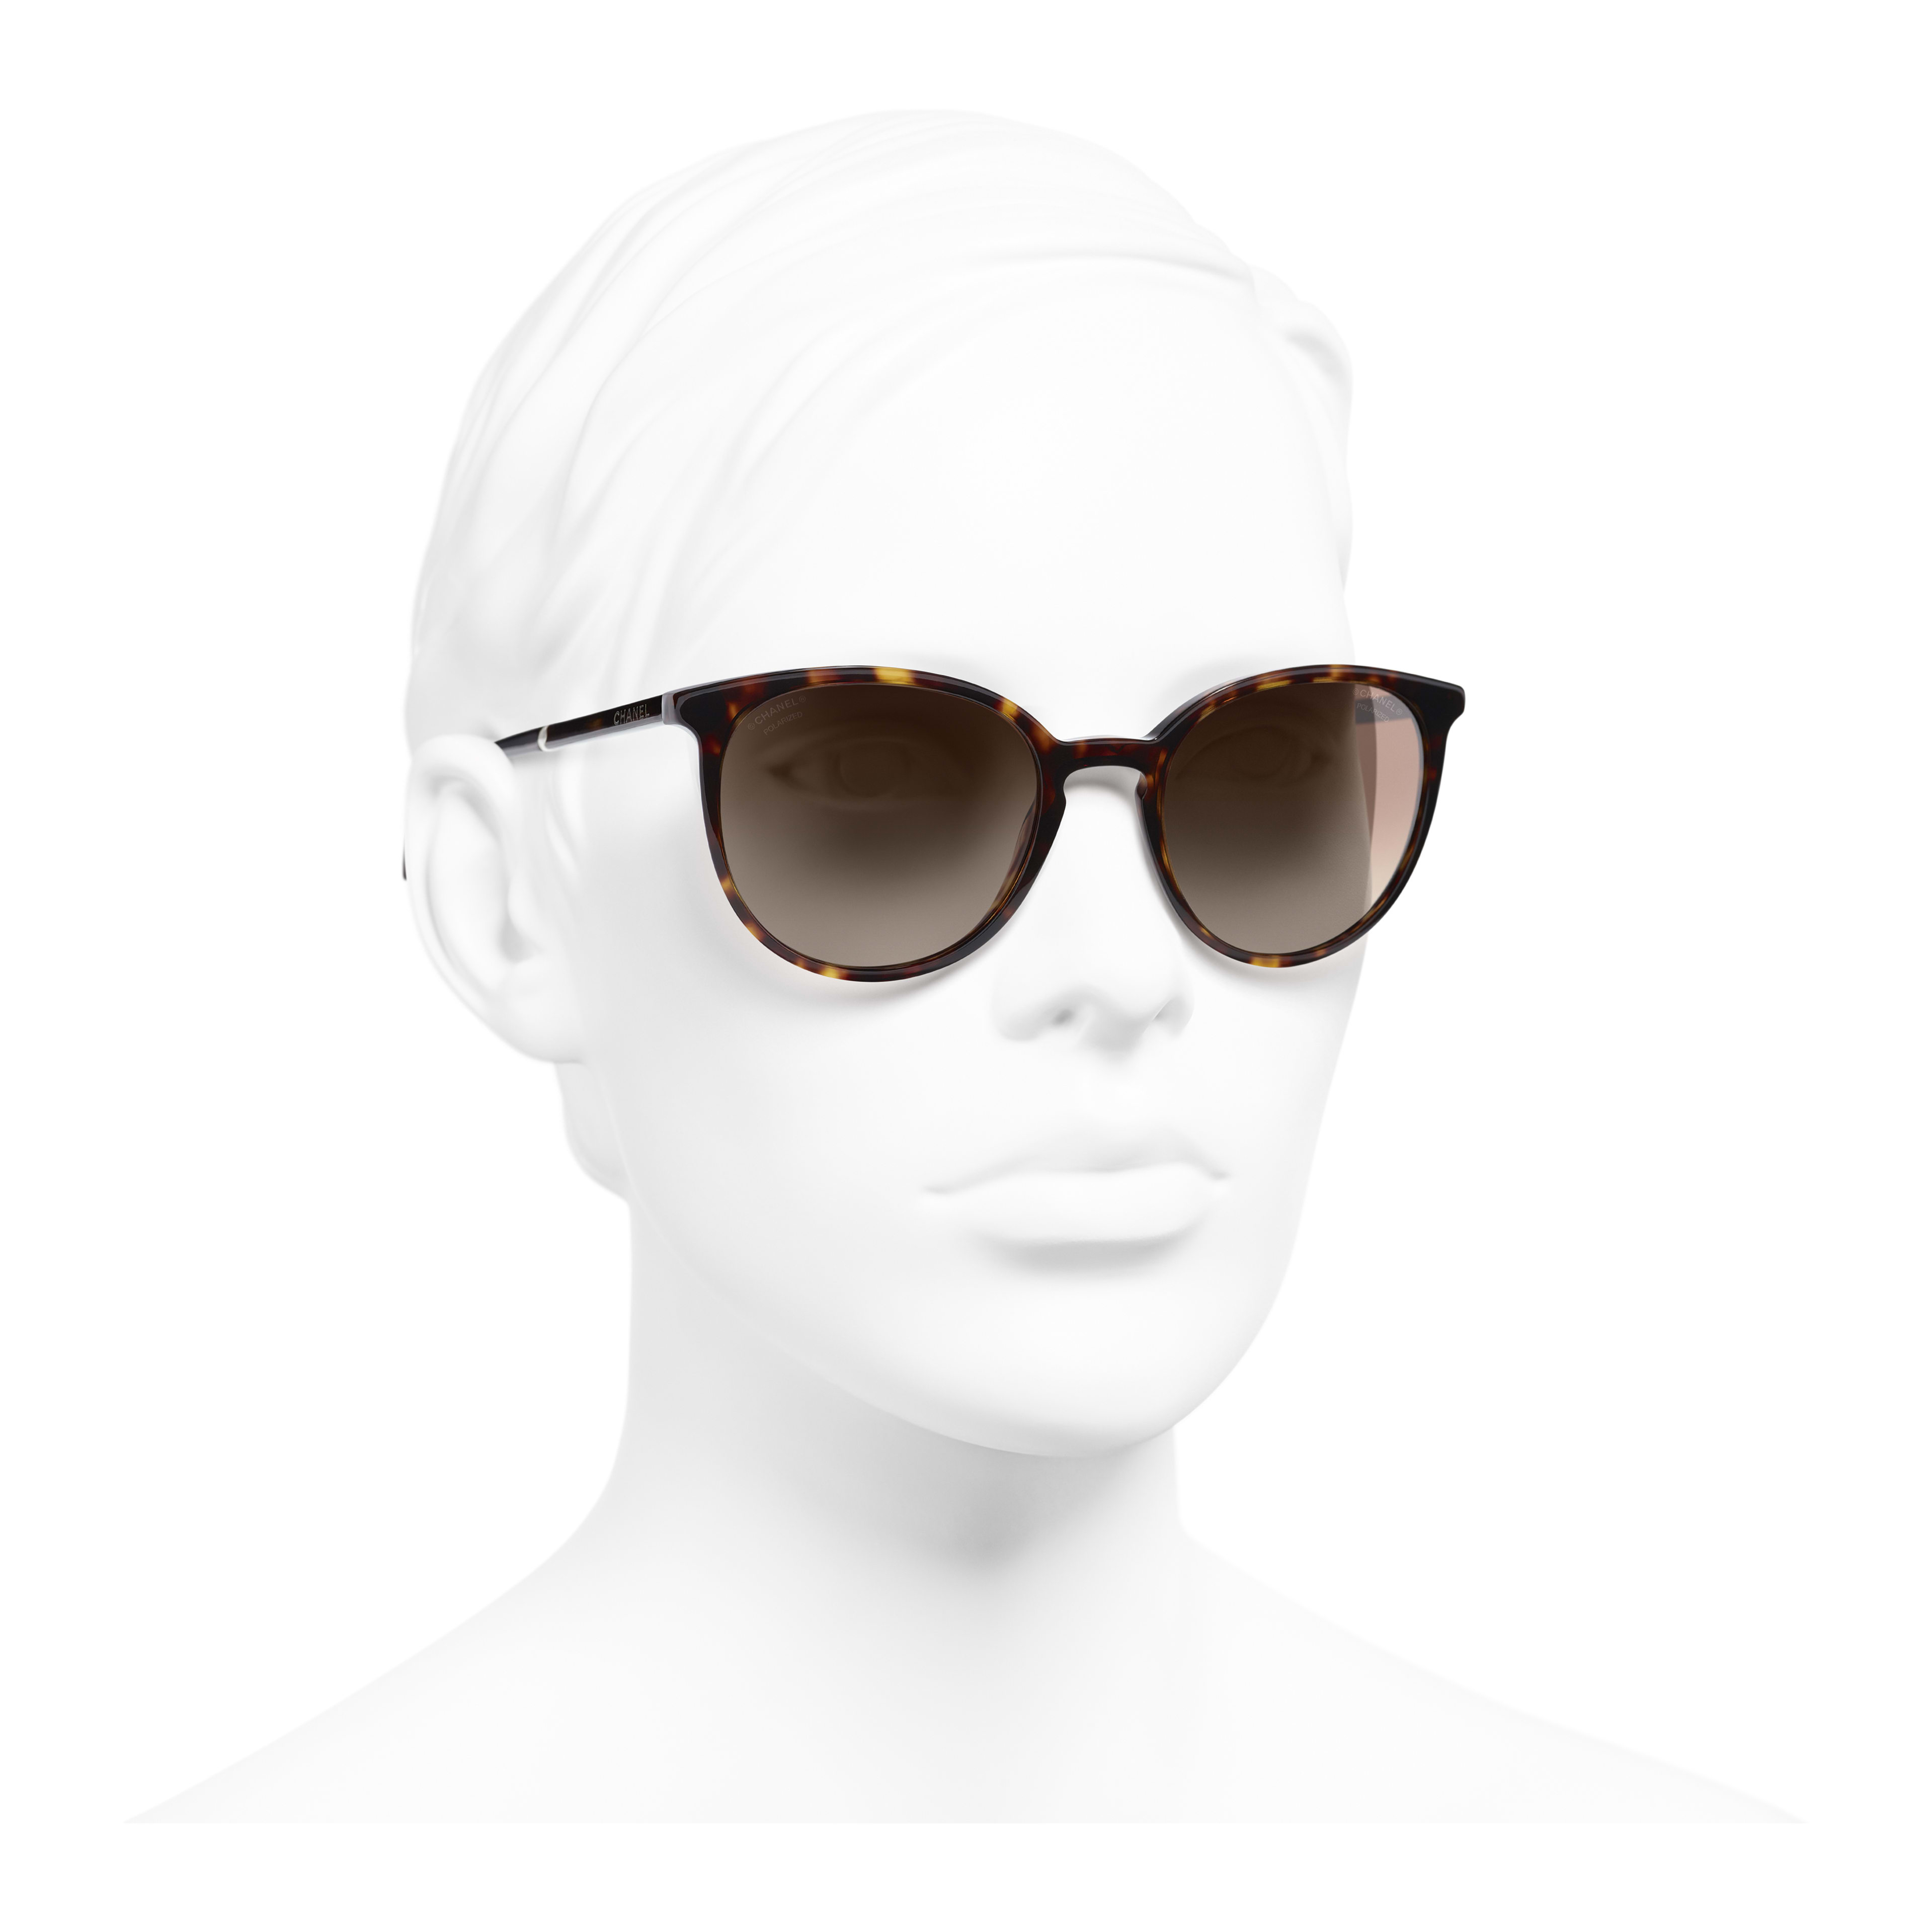 Butterfly Sunglasses - Dark Tortoise - Acetate & Imitation Pearls - Polarized Lenses - Worn 3/4 view - see full sized version